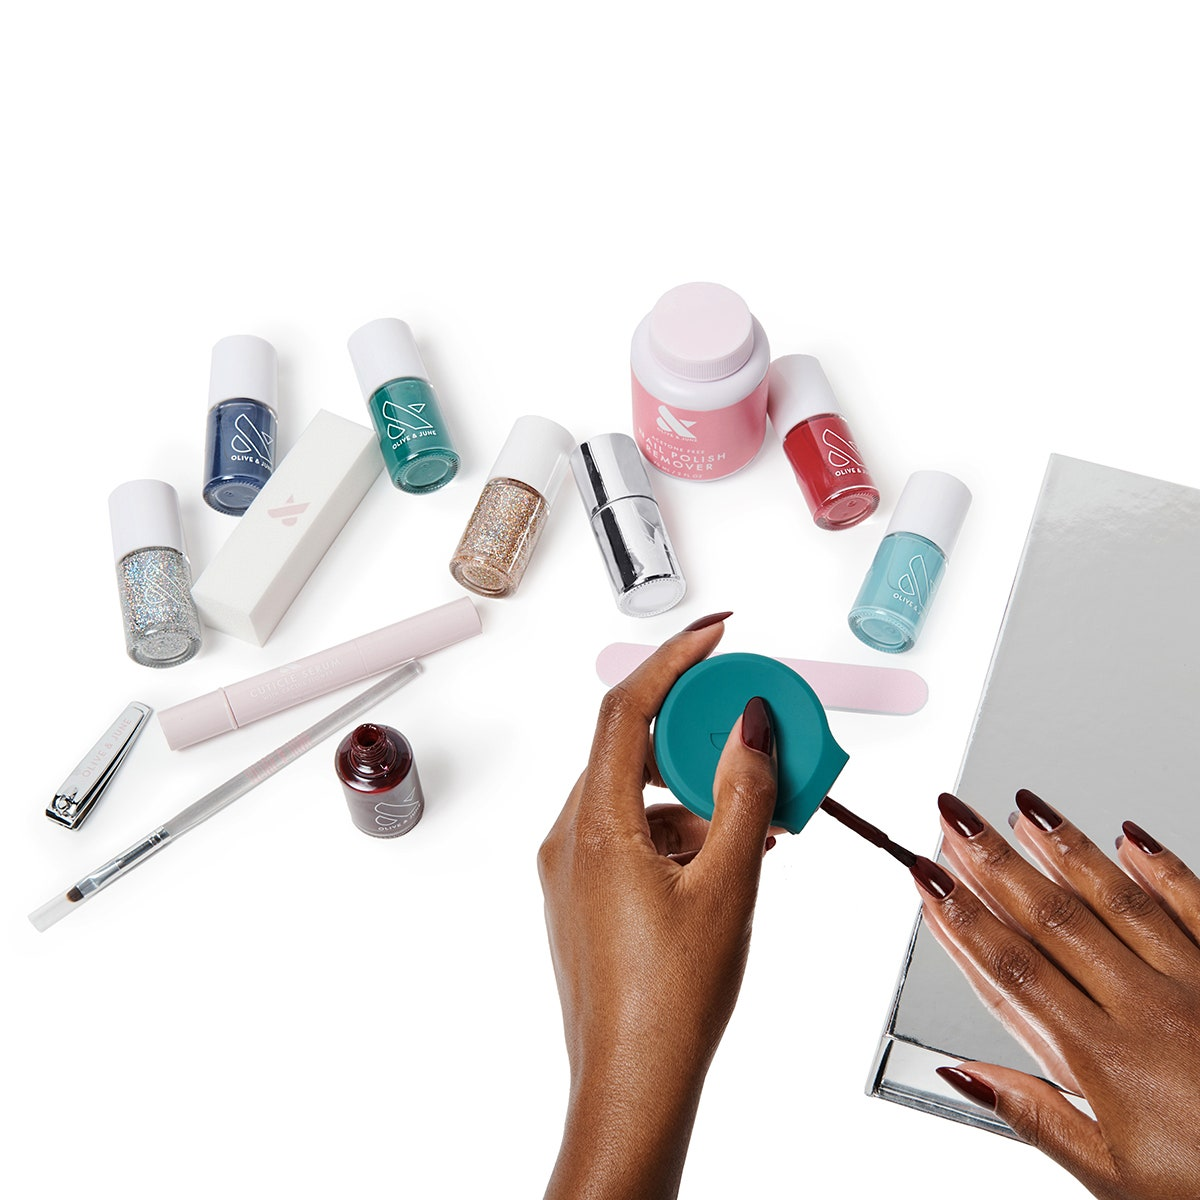 olive & june mani system hands applying nail polish with nail polish, nail file, polish remover and brushes